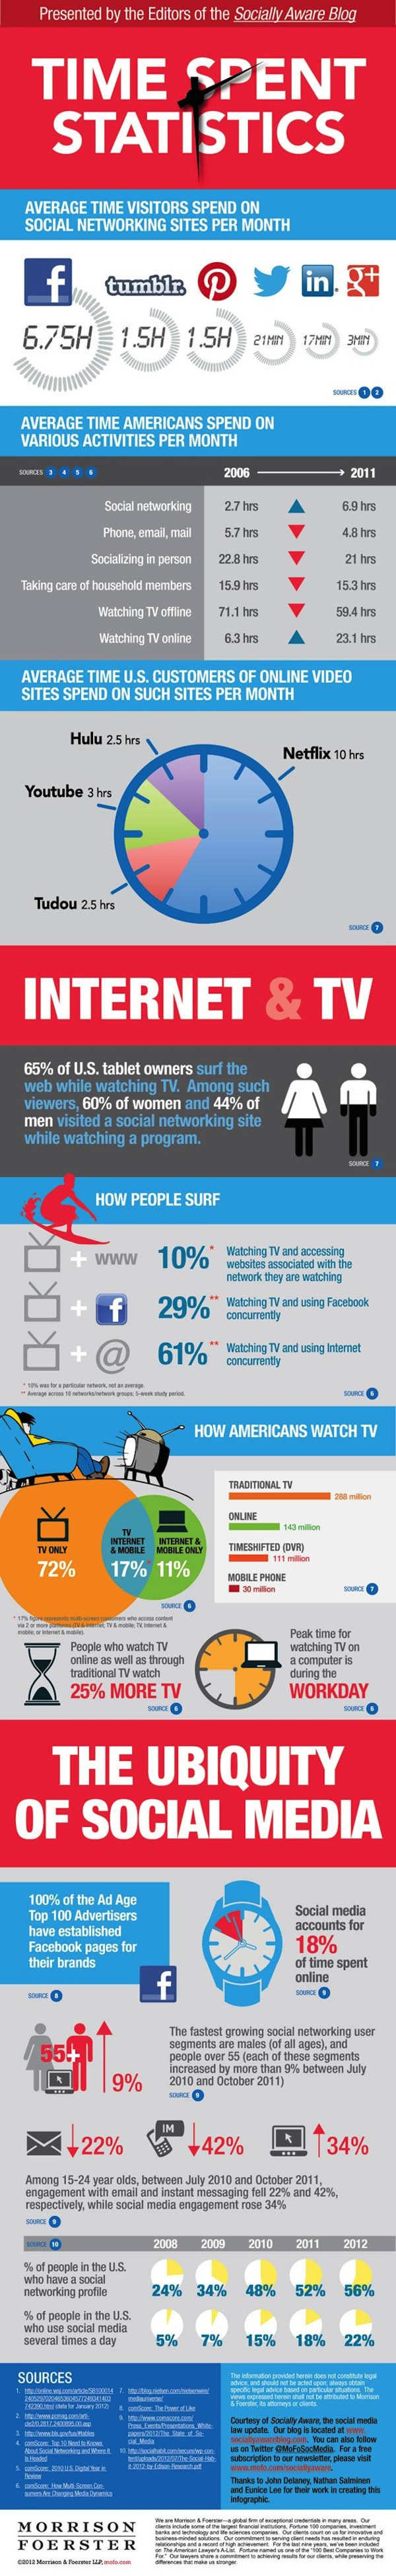 The Impact of Social Media- infographic (2)